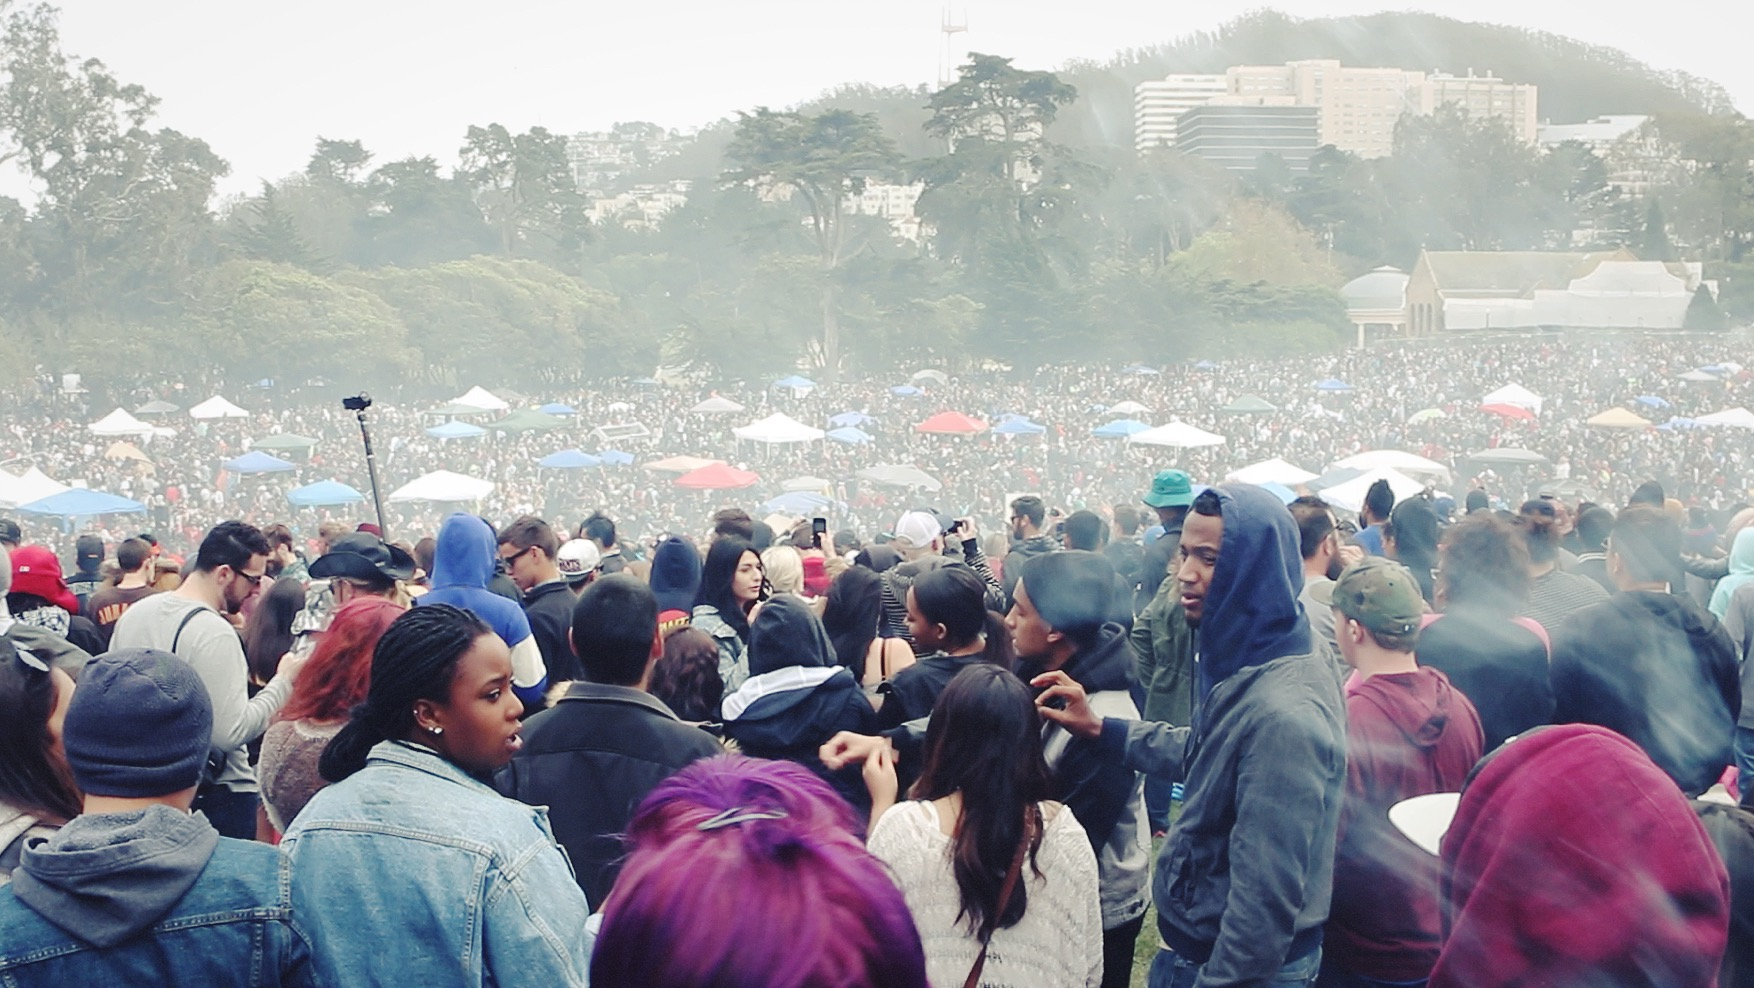 Thousands gather at Golden Gate Park to celebrate 4/20. (Jeremy Raff/KQED)